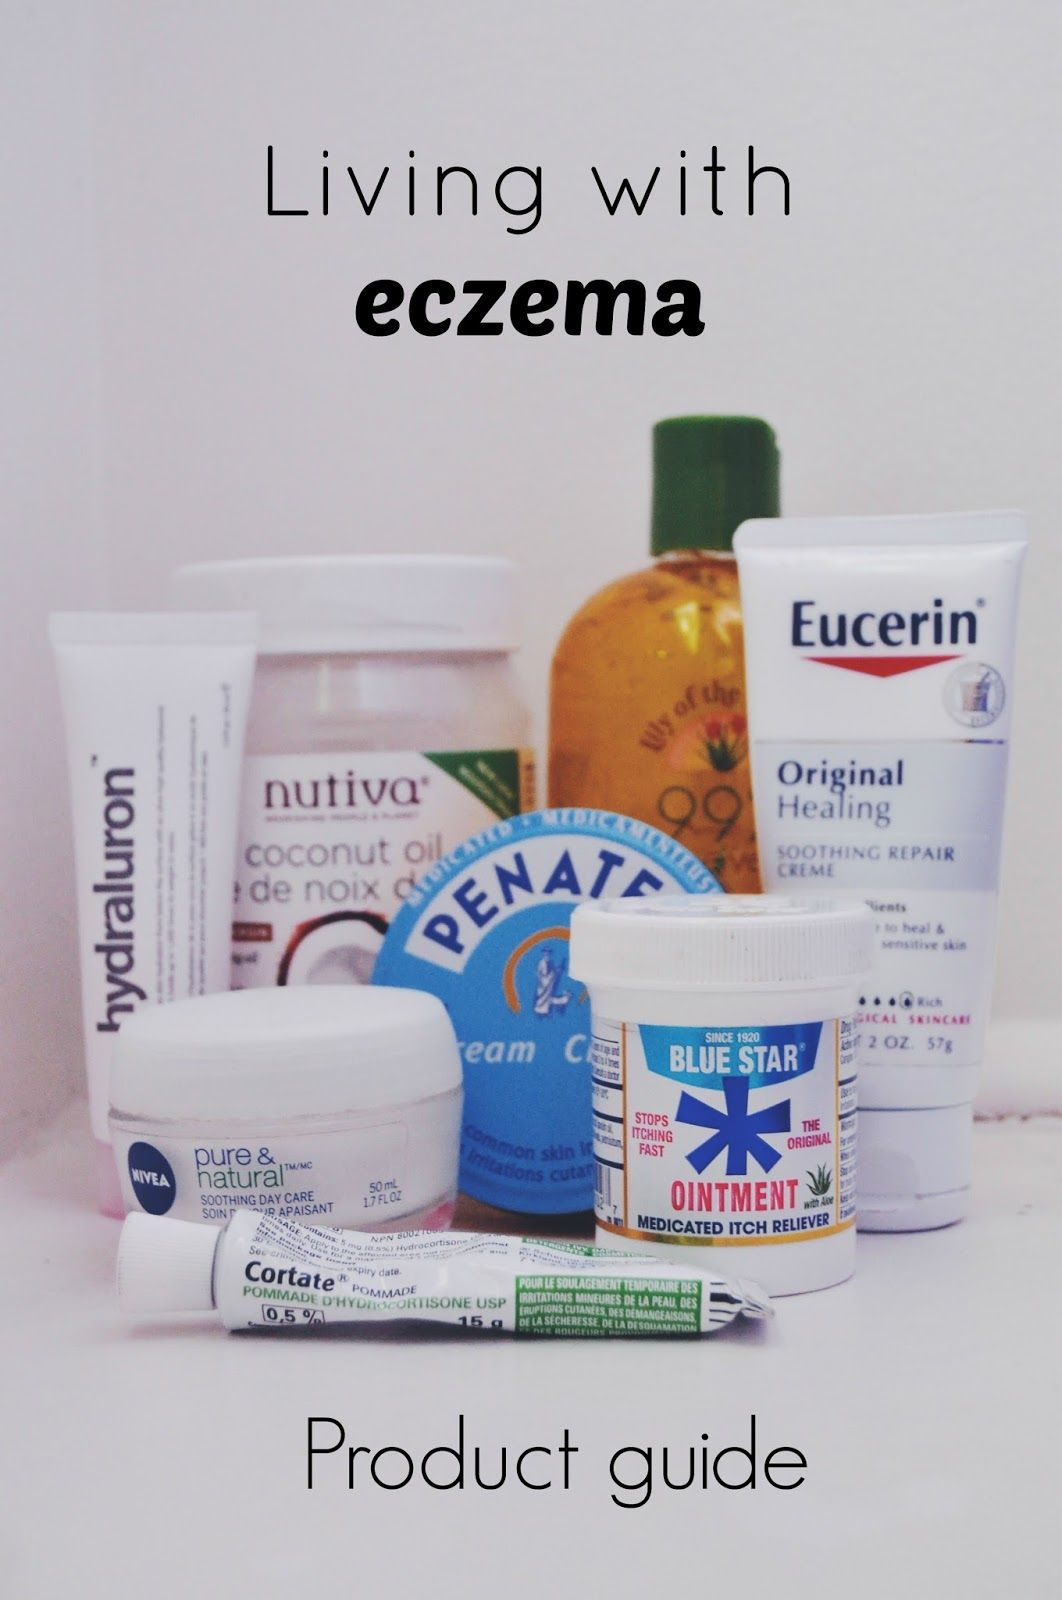 Blue Star Ointment Is Rated As A Top Eczema Treatment Eczema